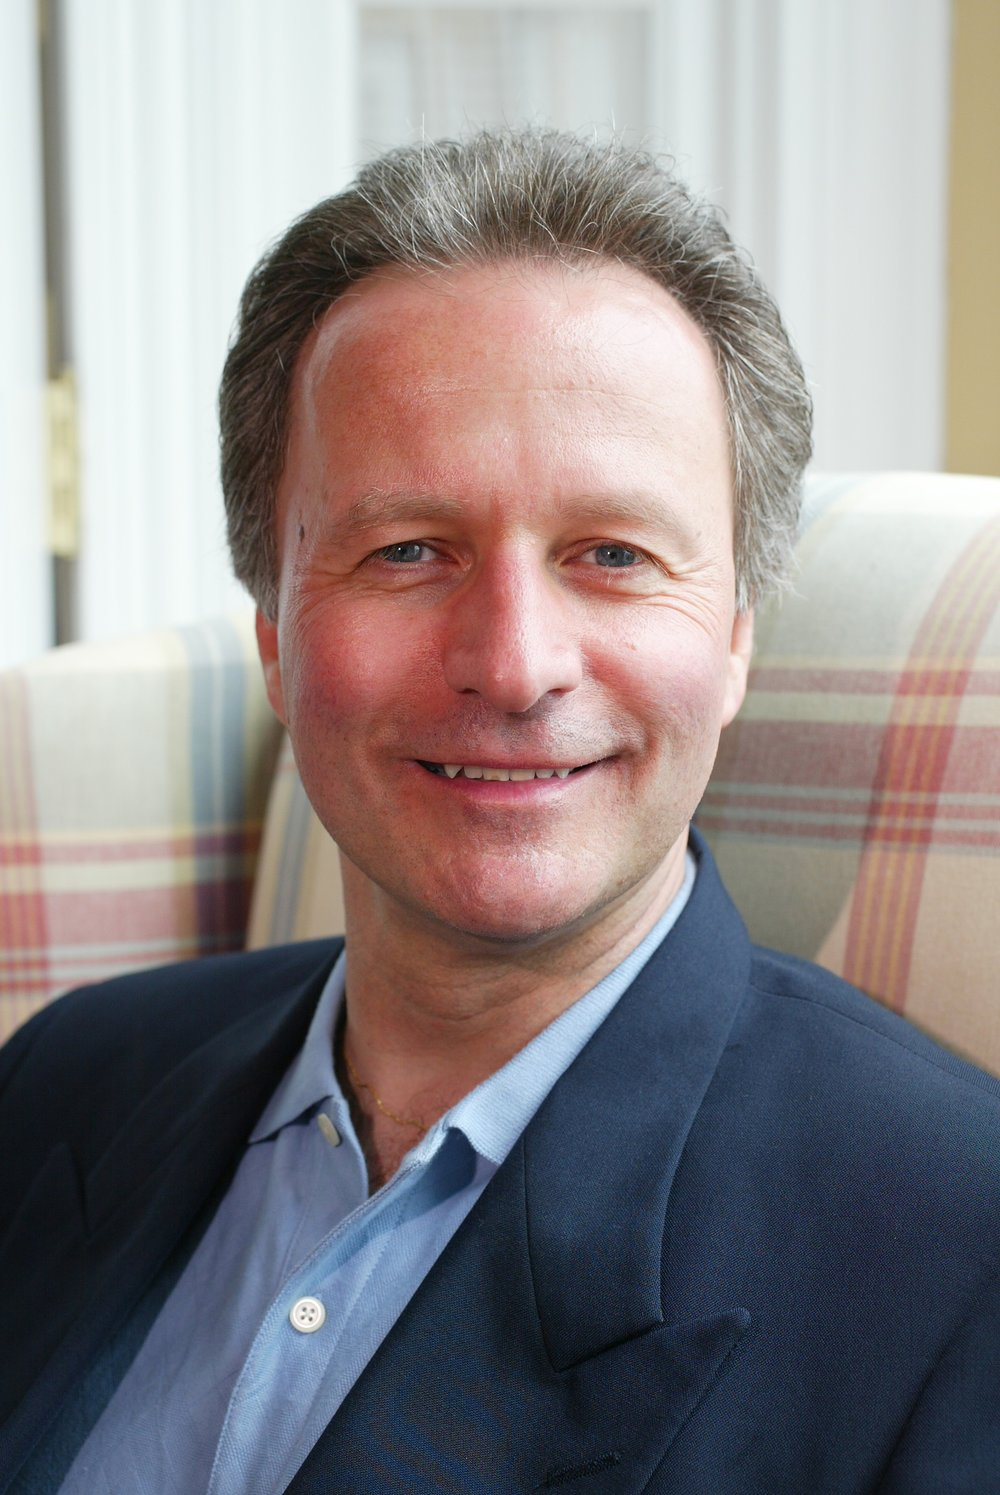 Michel Ducamp - Chief Operating Officer - The Adelphi Saratoga Springs - Michel has over 30 years of corporate, multi-property and property-based experience in luxury hospitality and real estate management.  His highly diversified career has concentrated on the strategic development, construction, historic renovation, financial turnaround and operational restructuring of well-known properties, homes, offices and brands for firms including Four Seasons Hotels and Resorts, St. Regis Hotels & Resorts, Rocco Forte Hotels, Nantucket Island Resorts, Solstice Collection, Jumby Bay Island Company and Bloomberg.  Michel's properties have consistently risen to the top of recognized worldwide rankings including the Travel + Leisure Gold List, Conde Nast Traveler's Top Hotels, Andrew Harper's Top Hideaways and Robb Report Best of the Best.Michel has highly diversified experience in development, real estate management, property takeovers and asset management. He also has extensive experience in hospitality operations, spas, golf and racquet sports, marinas and resorts, and considerable international, high visibility and high security experience.  He has held roles supervising project management and historic renovations and senior responsibilities in the Destination Club and Shared Use Real Estate markets where he managed ultra-luxury residential real estate operations and maintenance.Michel holds a bachelor's degree in liberal arts from Cornell University, as well as a master's degree from the Cornell University School of Hotel Administration.  He is also fully fluent in French and Spanish.